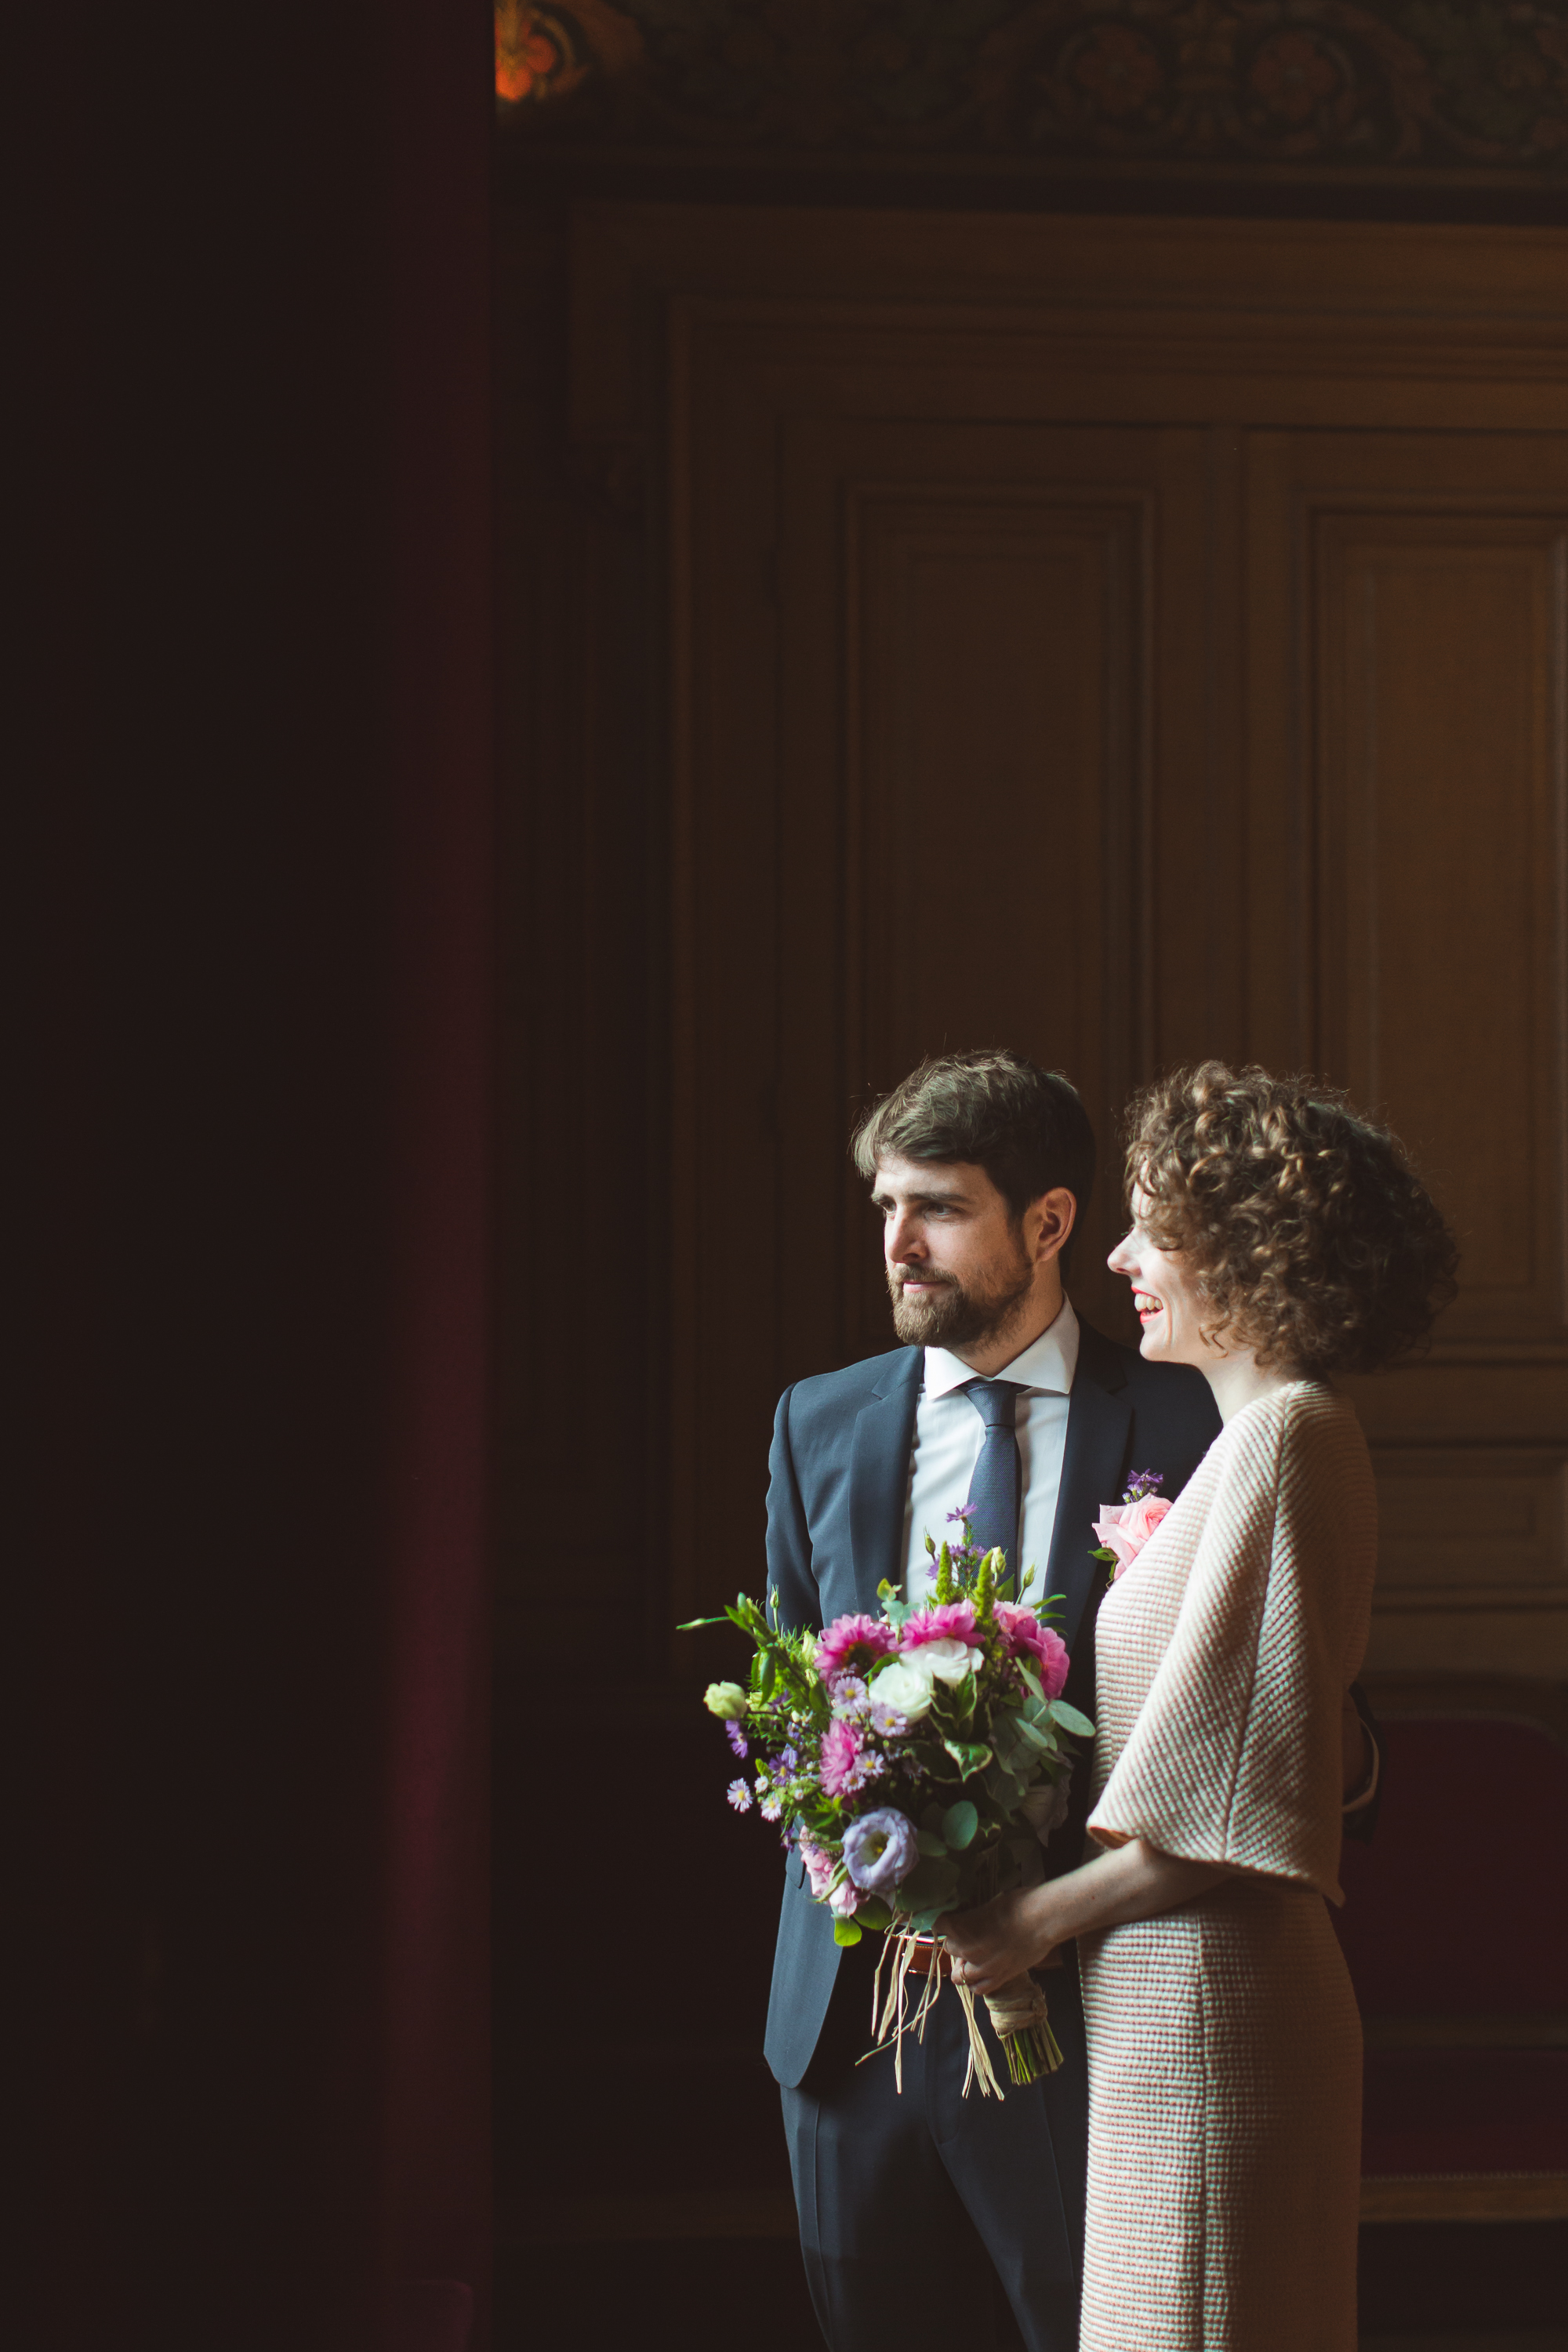 Emma&Nico_WeddingParis_by_UlaBlocksage-90.jpg